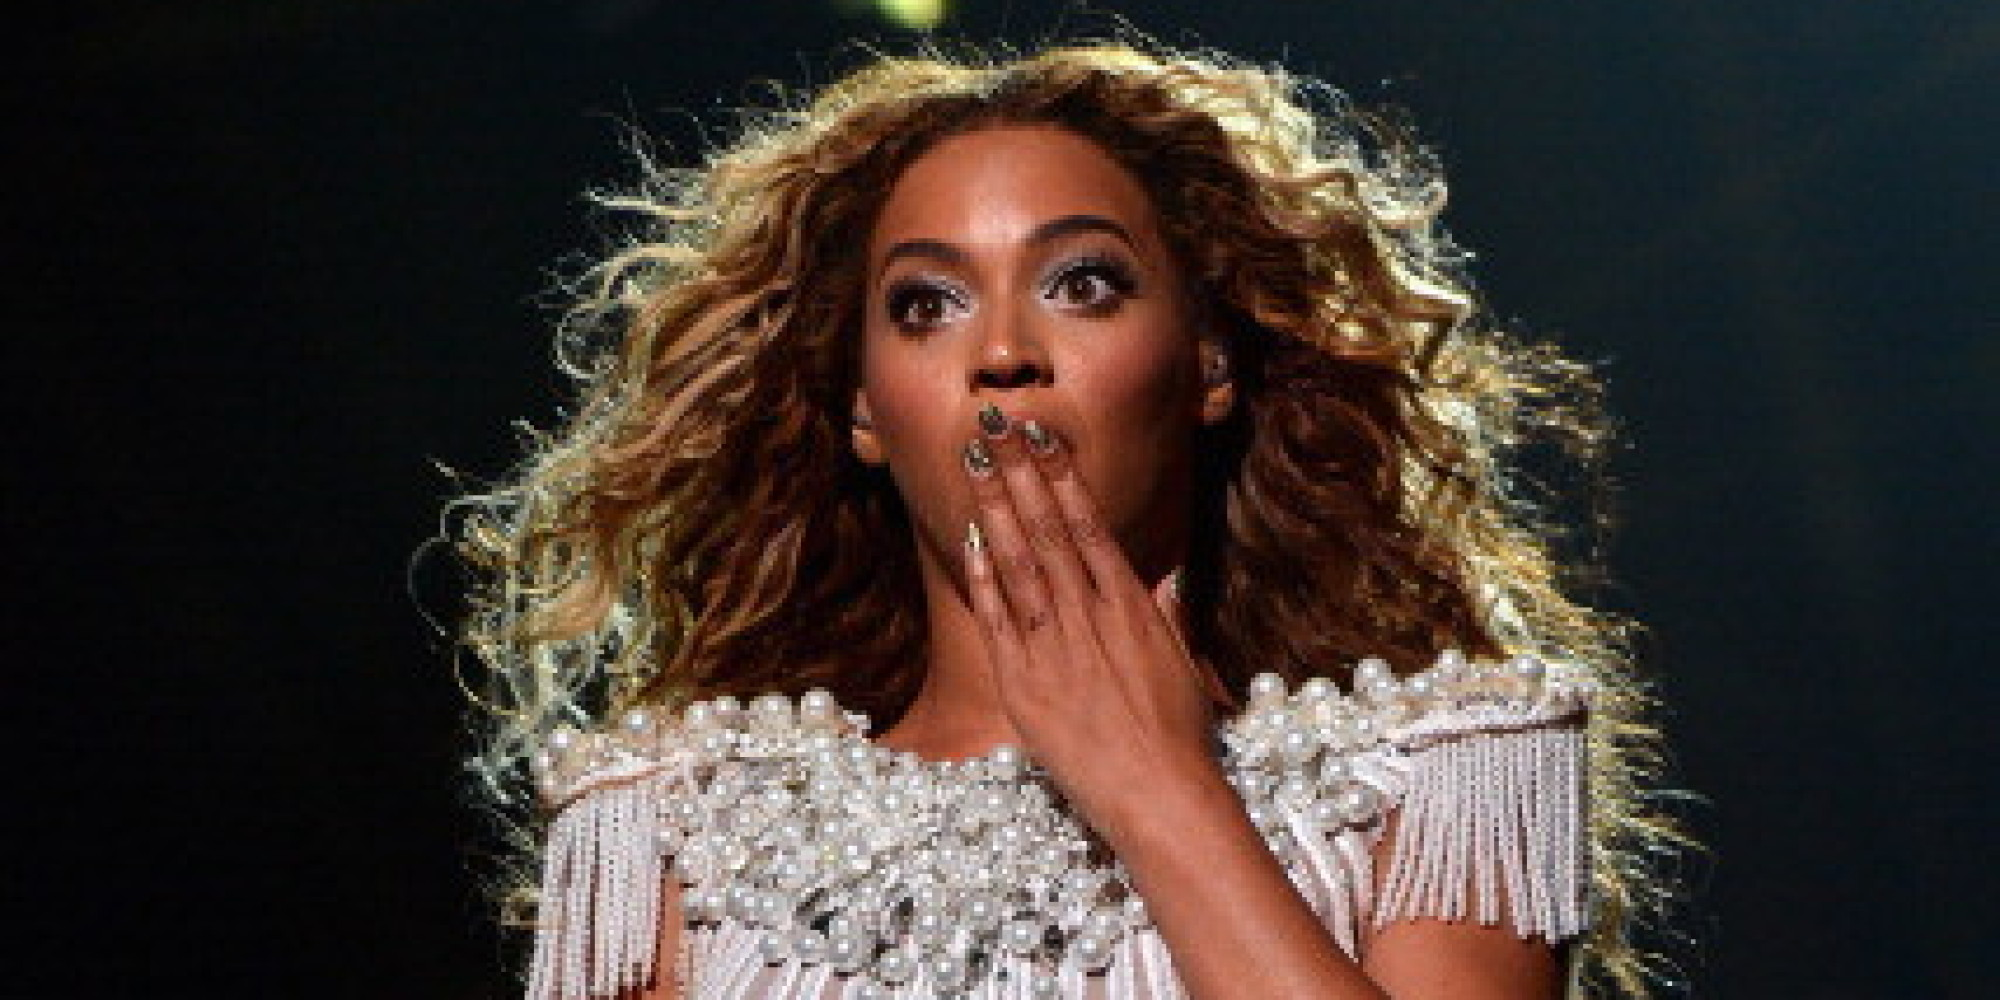 beyoncé's hairstyles are what really run the world | huffpost